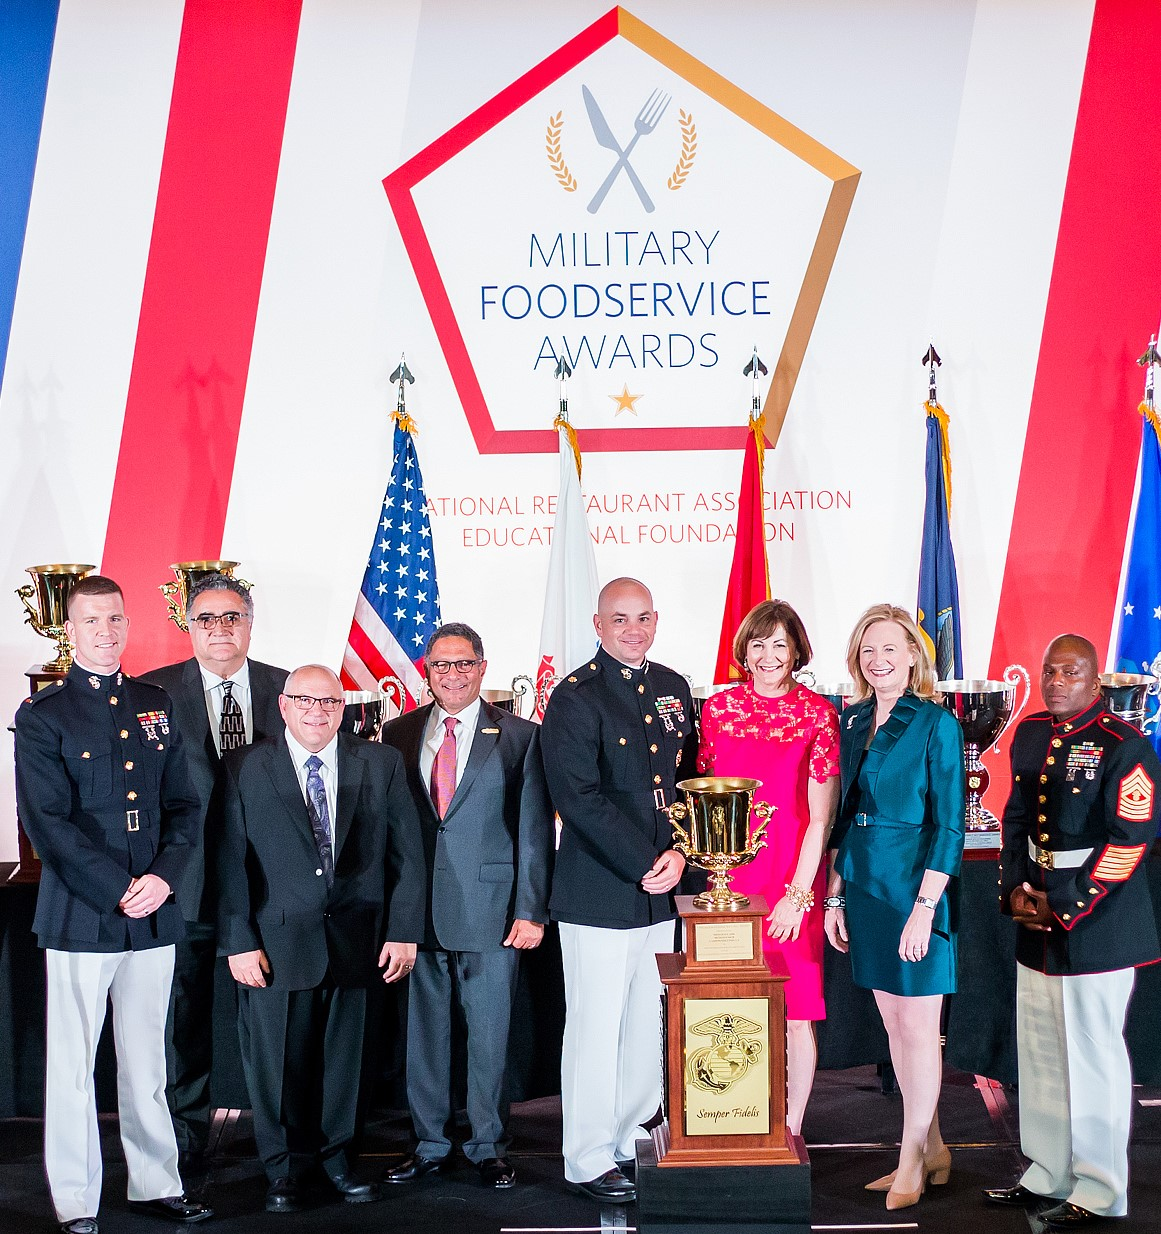 Sodexo's operations at Mess Hall 2204 at Marine Corps Base Camp Pendleton earned the 2019 W.P.T. Hill Memorial Award